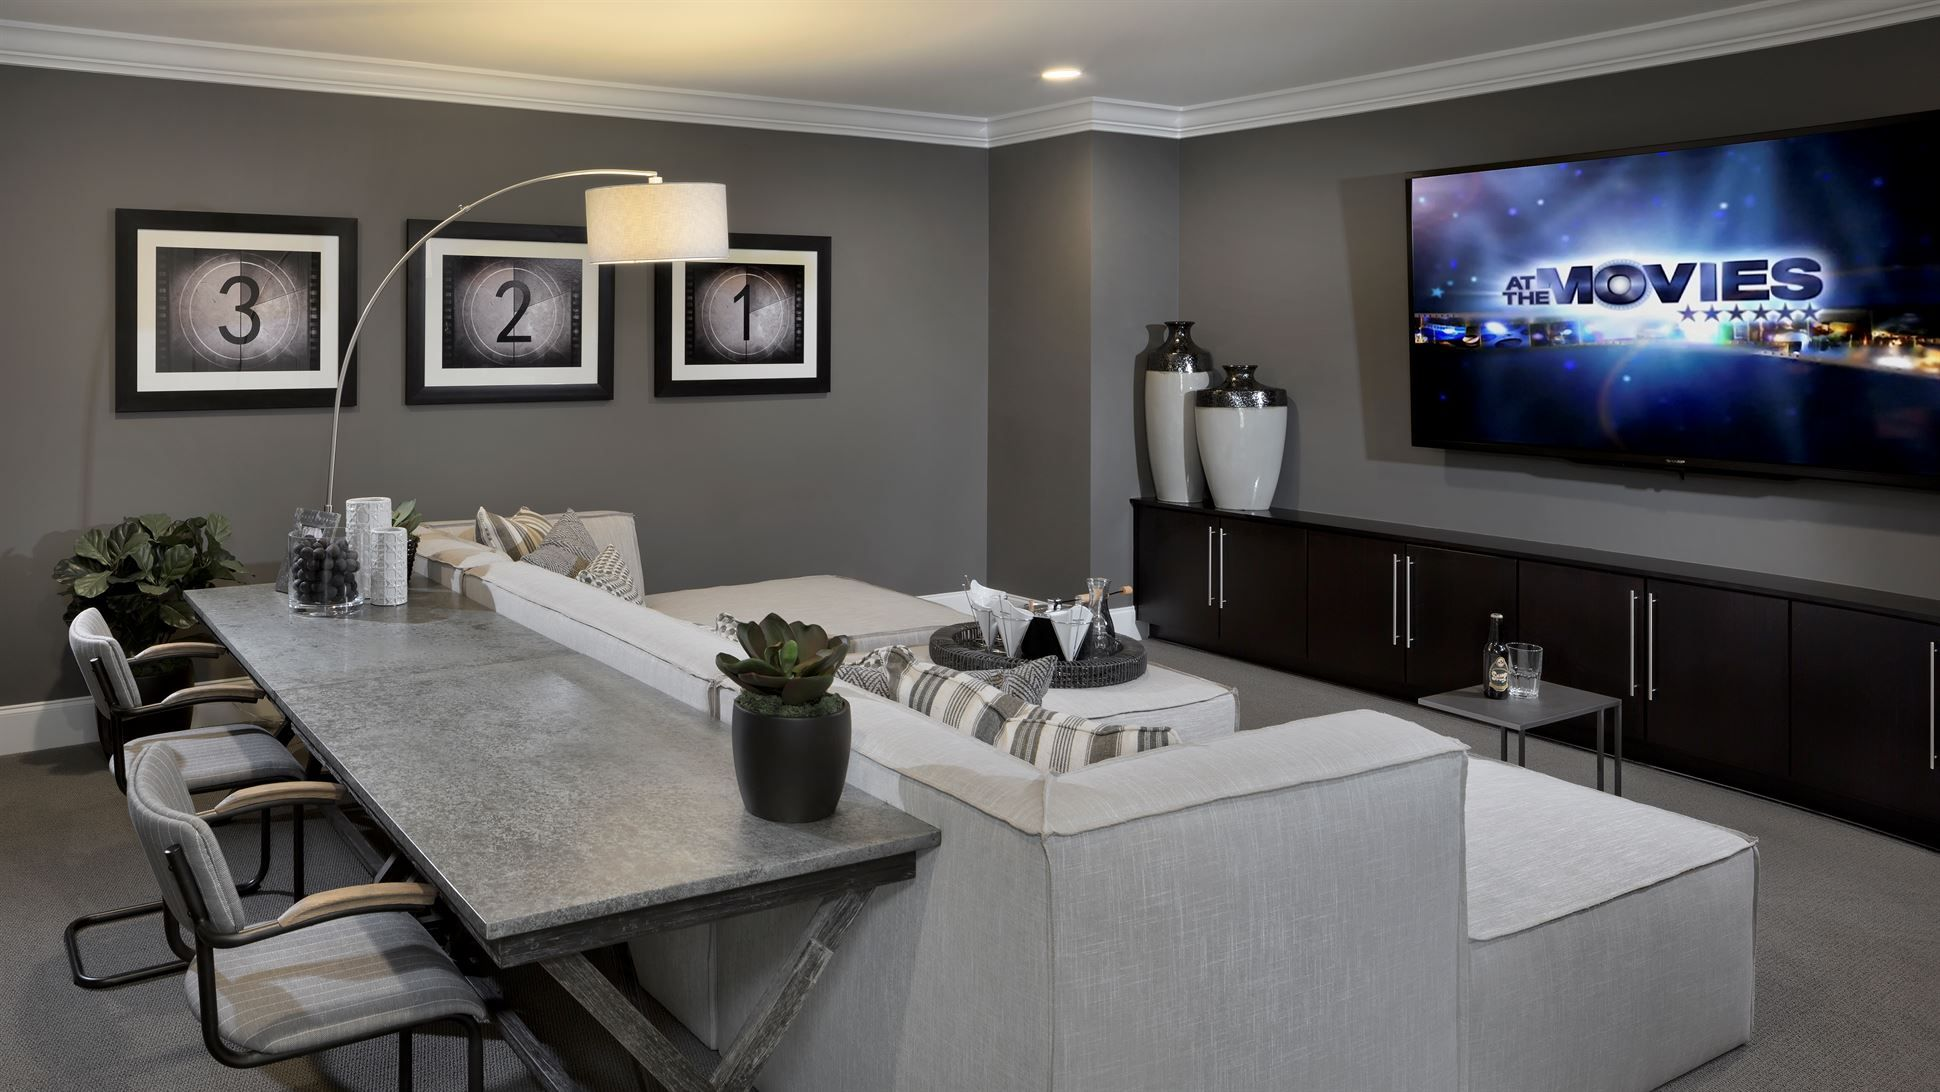 Basement Media Room With Kitchenette - Basement - Pinterest -